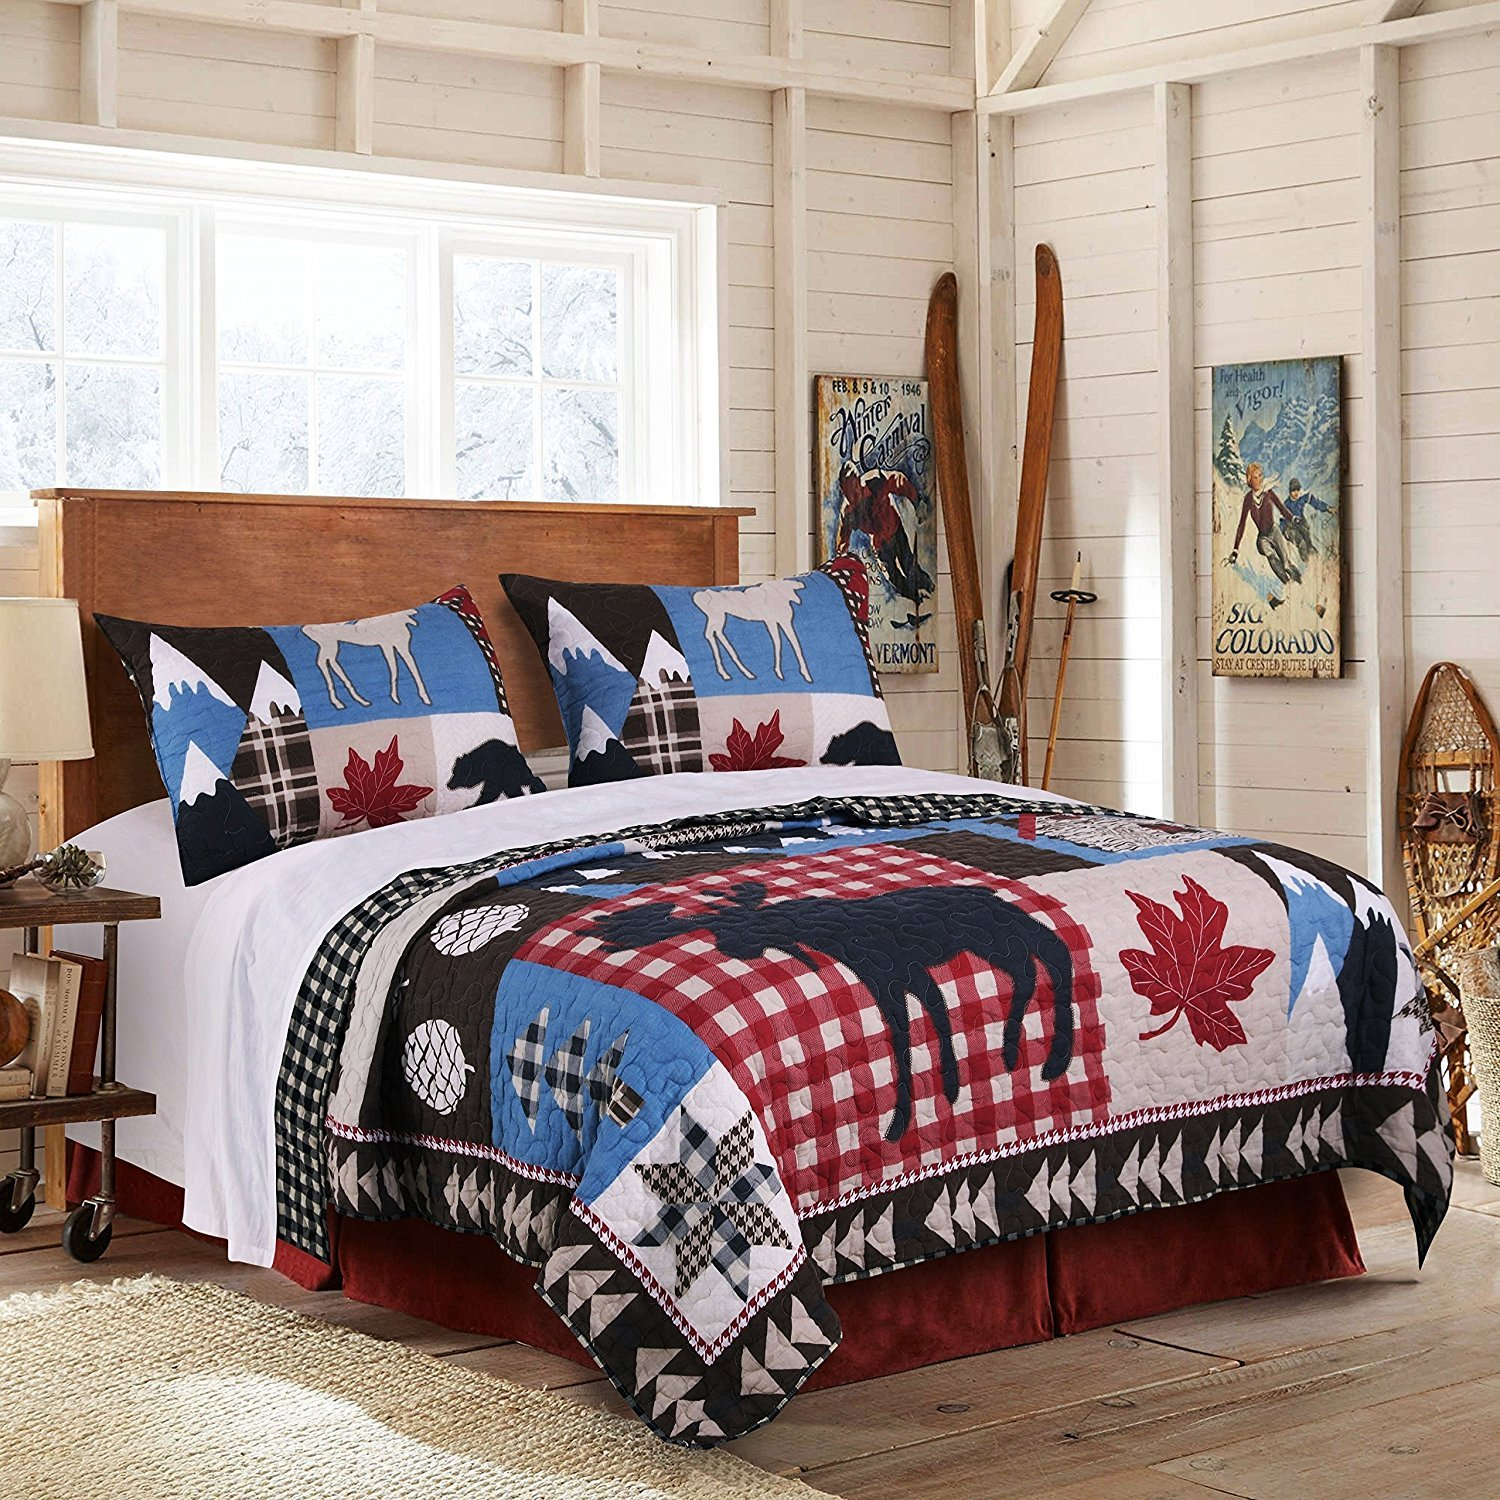 3pc Blue White Red Black Hunting Themed Quilt Full Queen Set, Wilderness Wild, Black Bear Bedding Moose Plaid